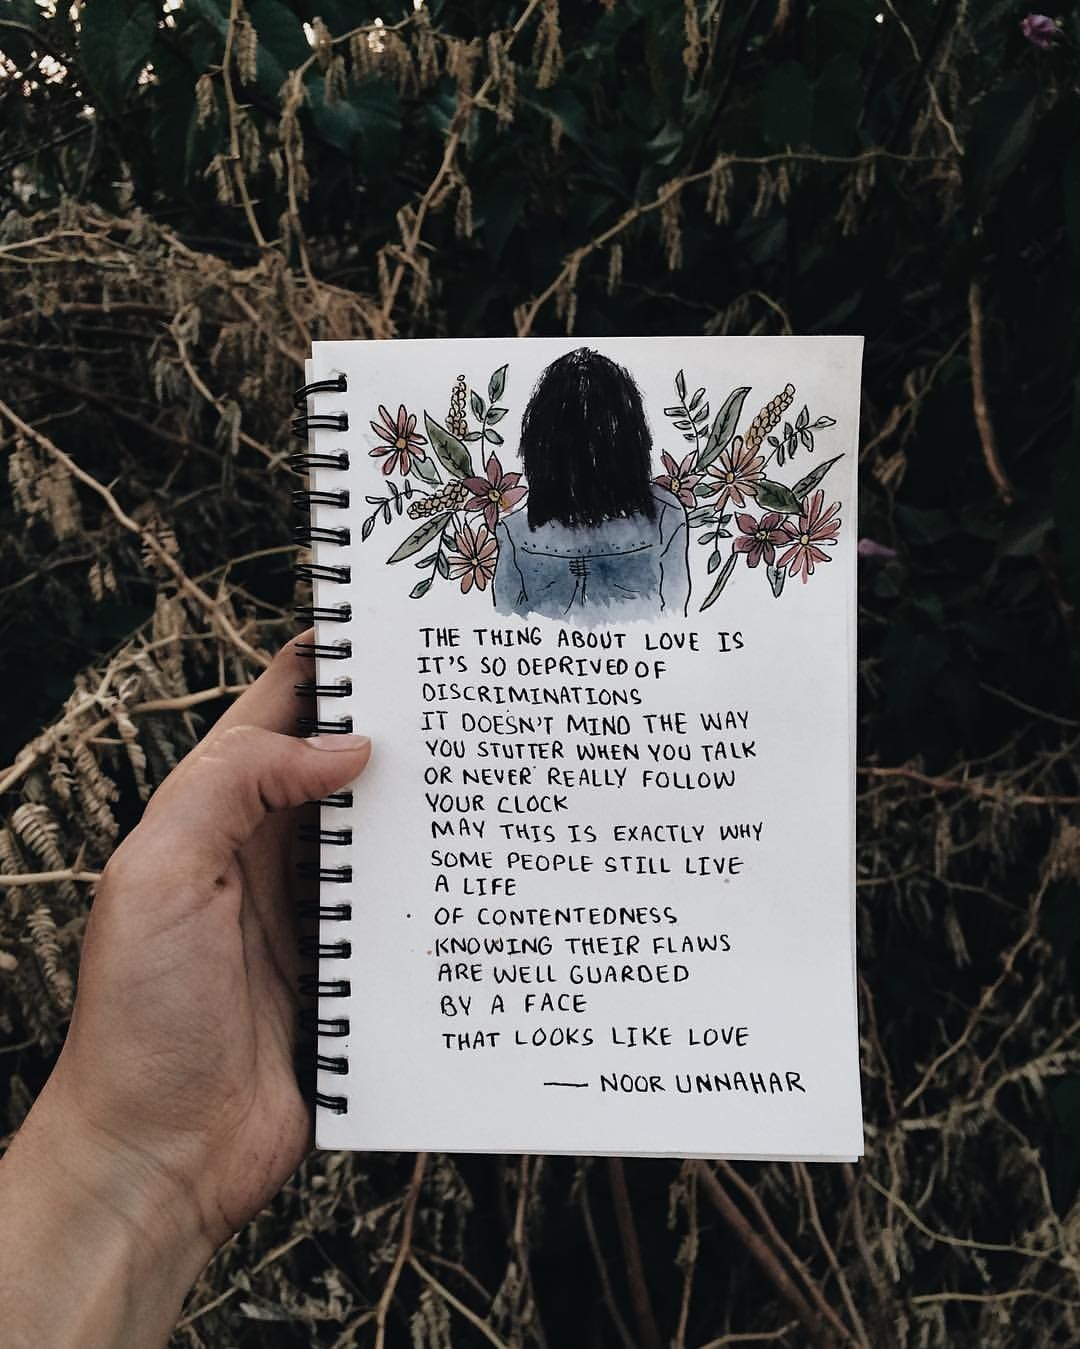 a face that looks like love // poetry by noor unnahar // art journal journaling ideas inspiration, words quotes … | Doodle art journals, Art journal, Sketch book